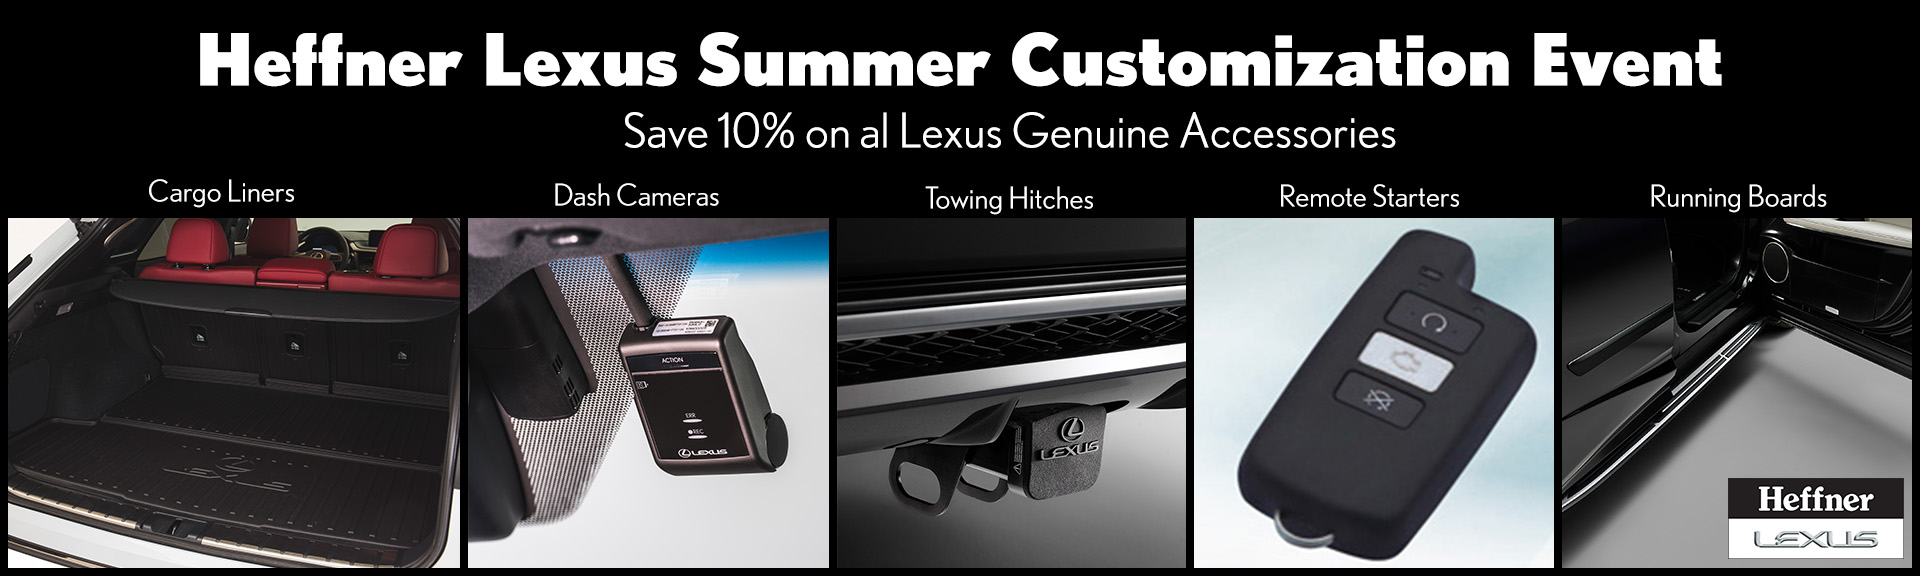 Heffner Lexus Summer Customization Event